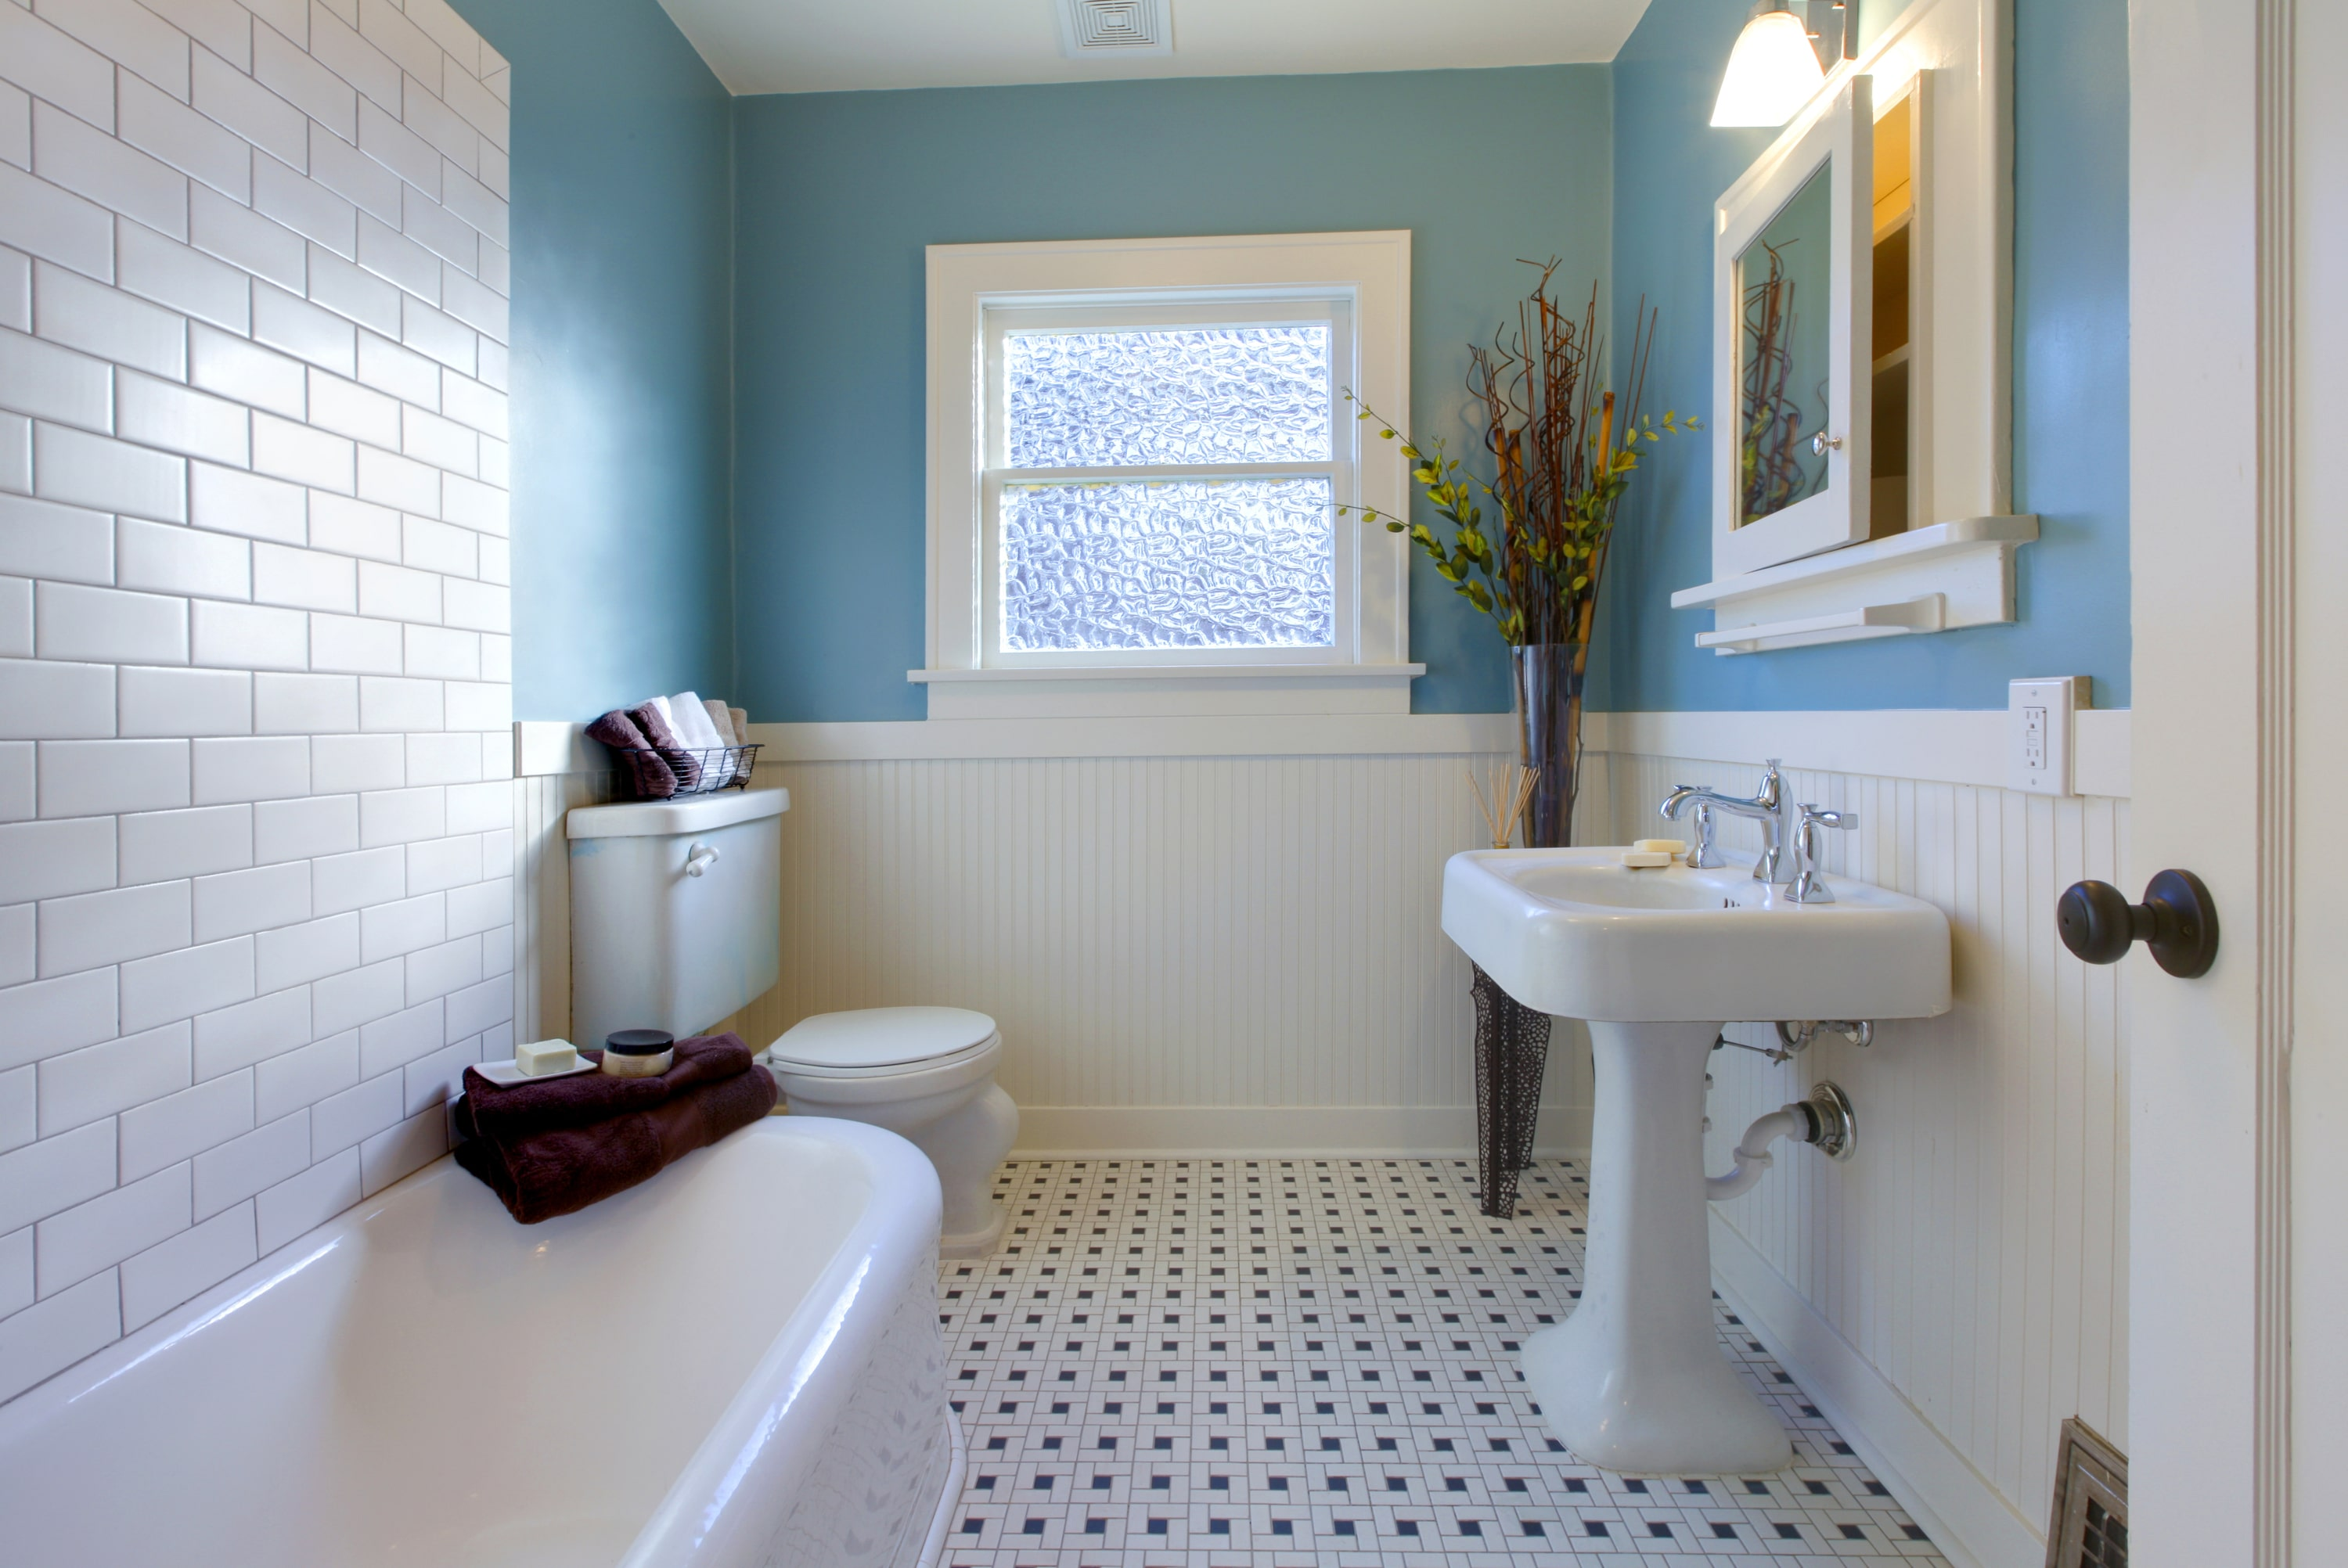 bathroom improvements ideas 8 bathroom design remodeling ideas on a budget 8472